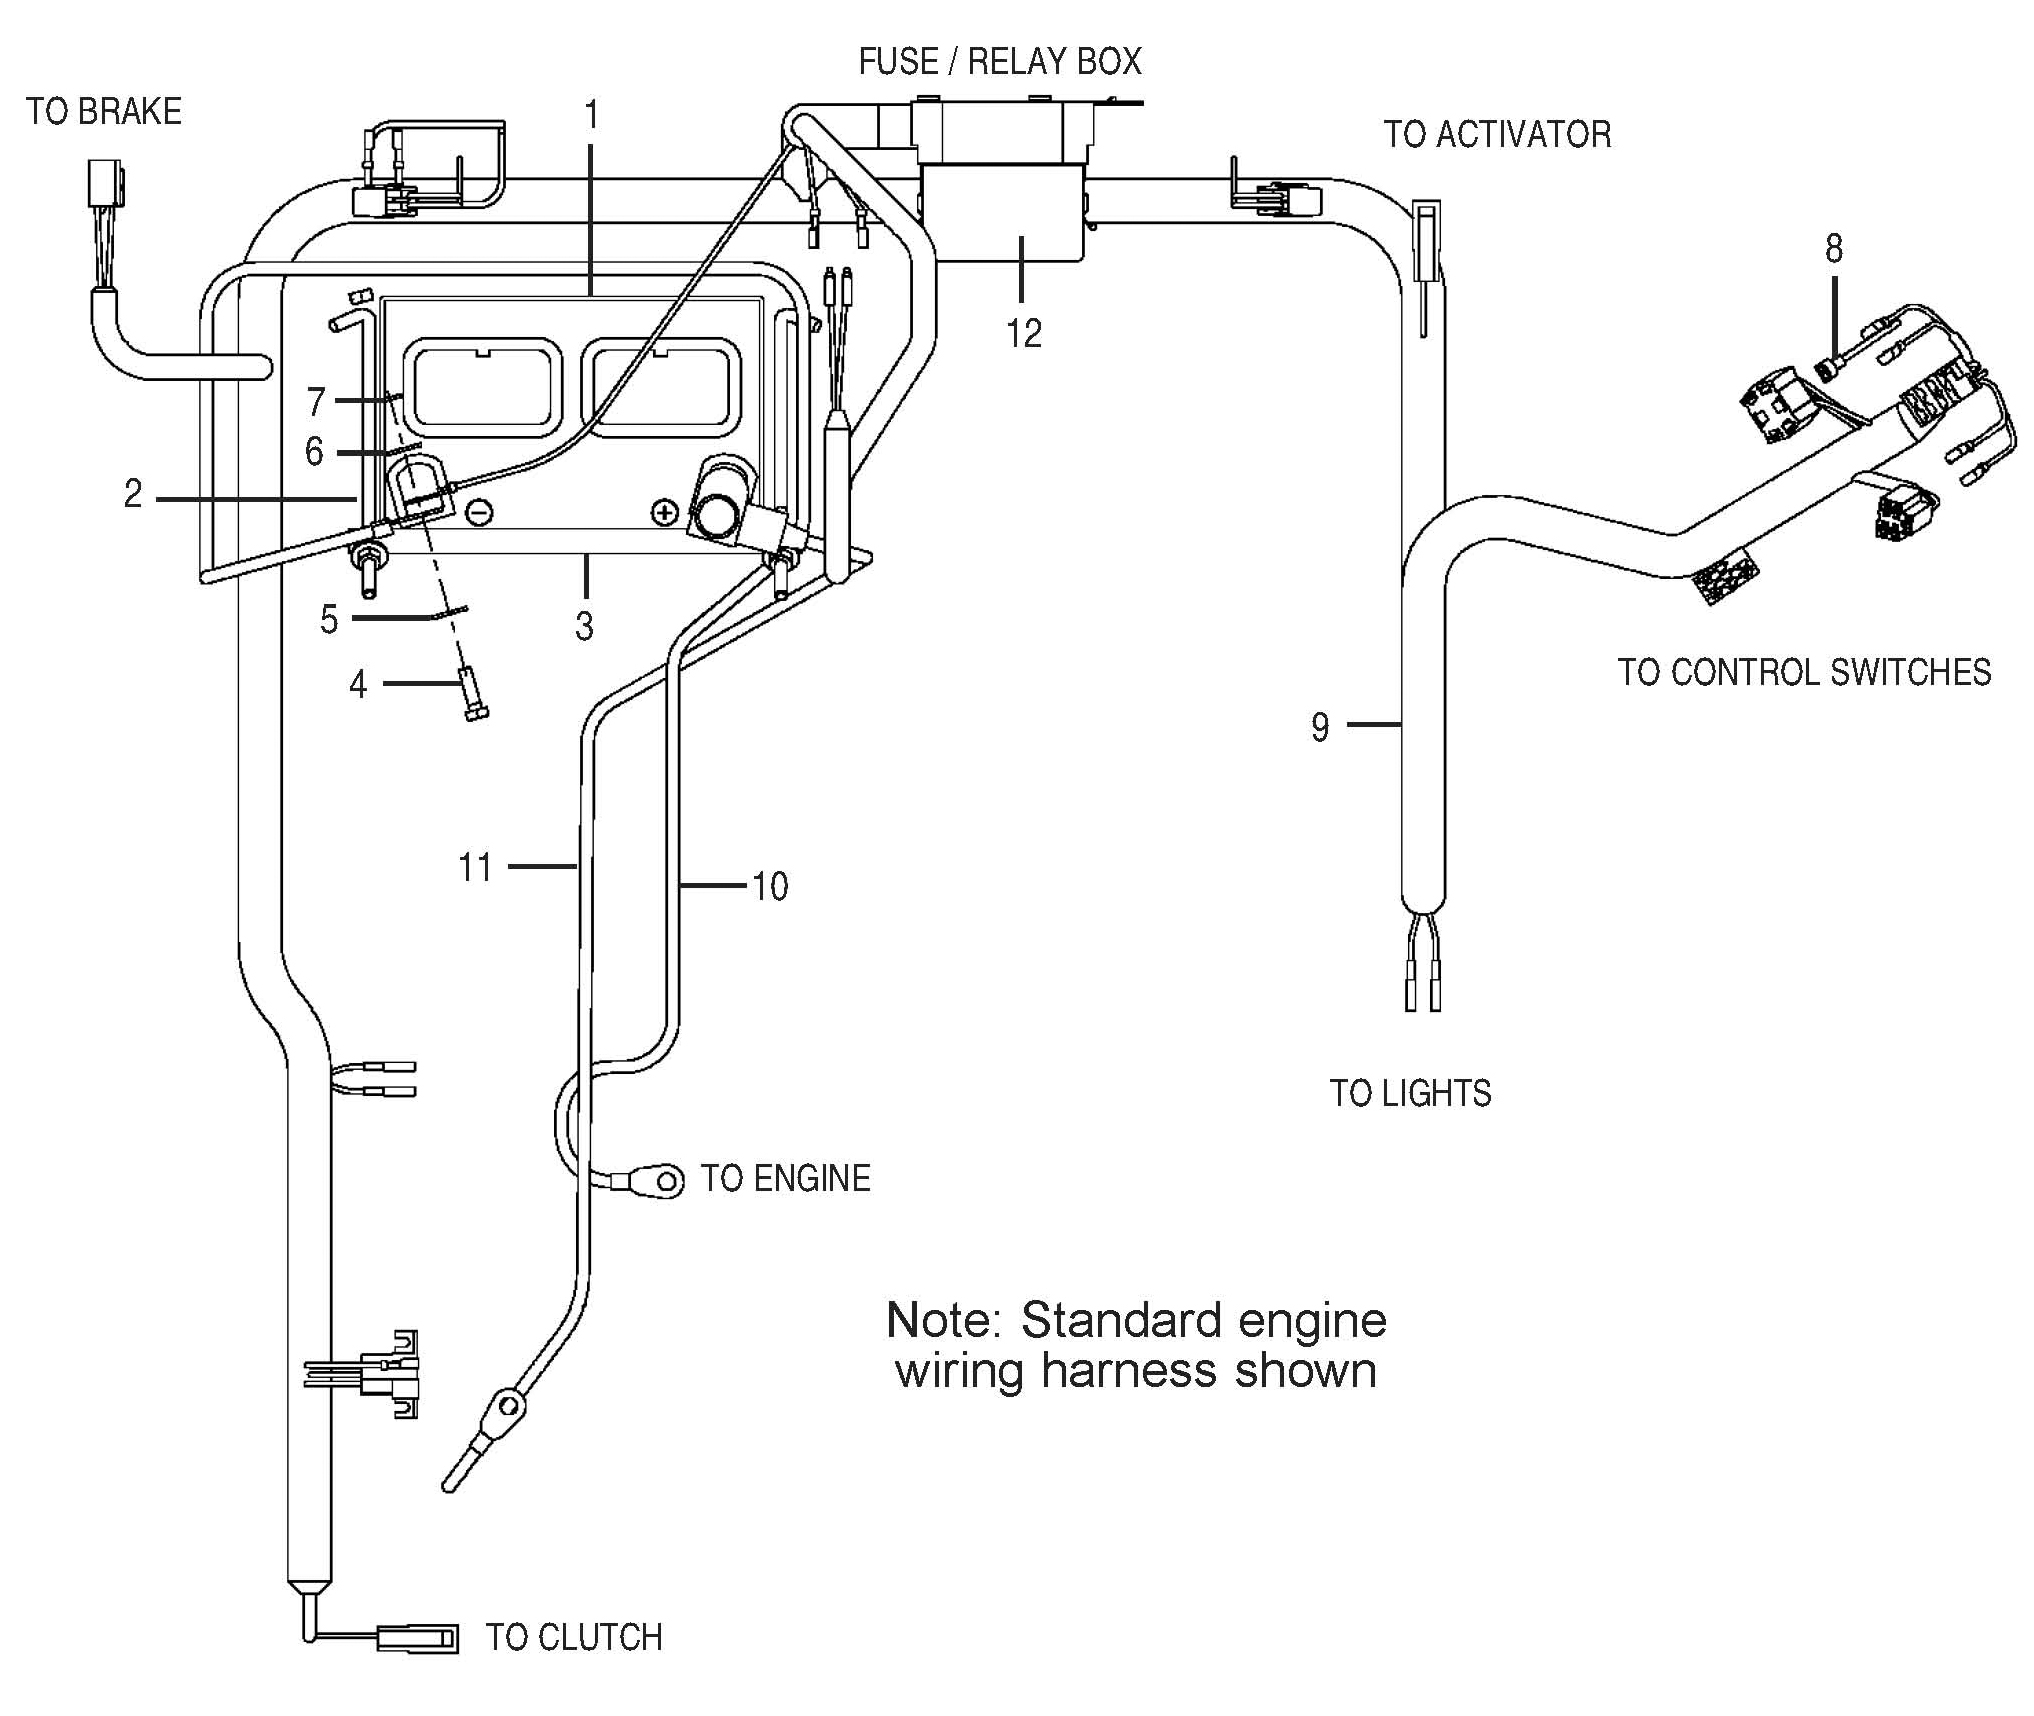 Standard Engine Diagram Bush Hog Pz Professional Series Zero Turn Mowers Parts Hover Over Image For Expanded View